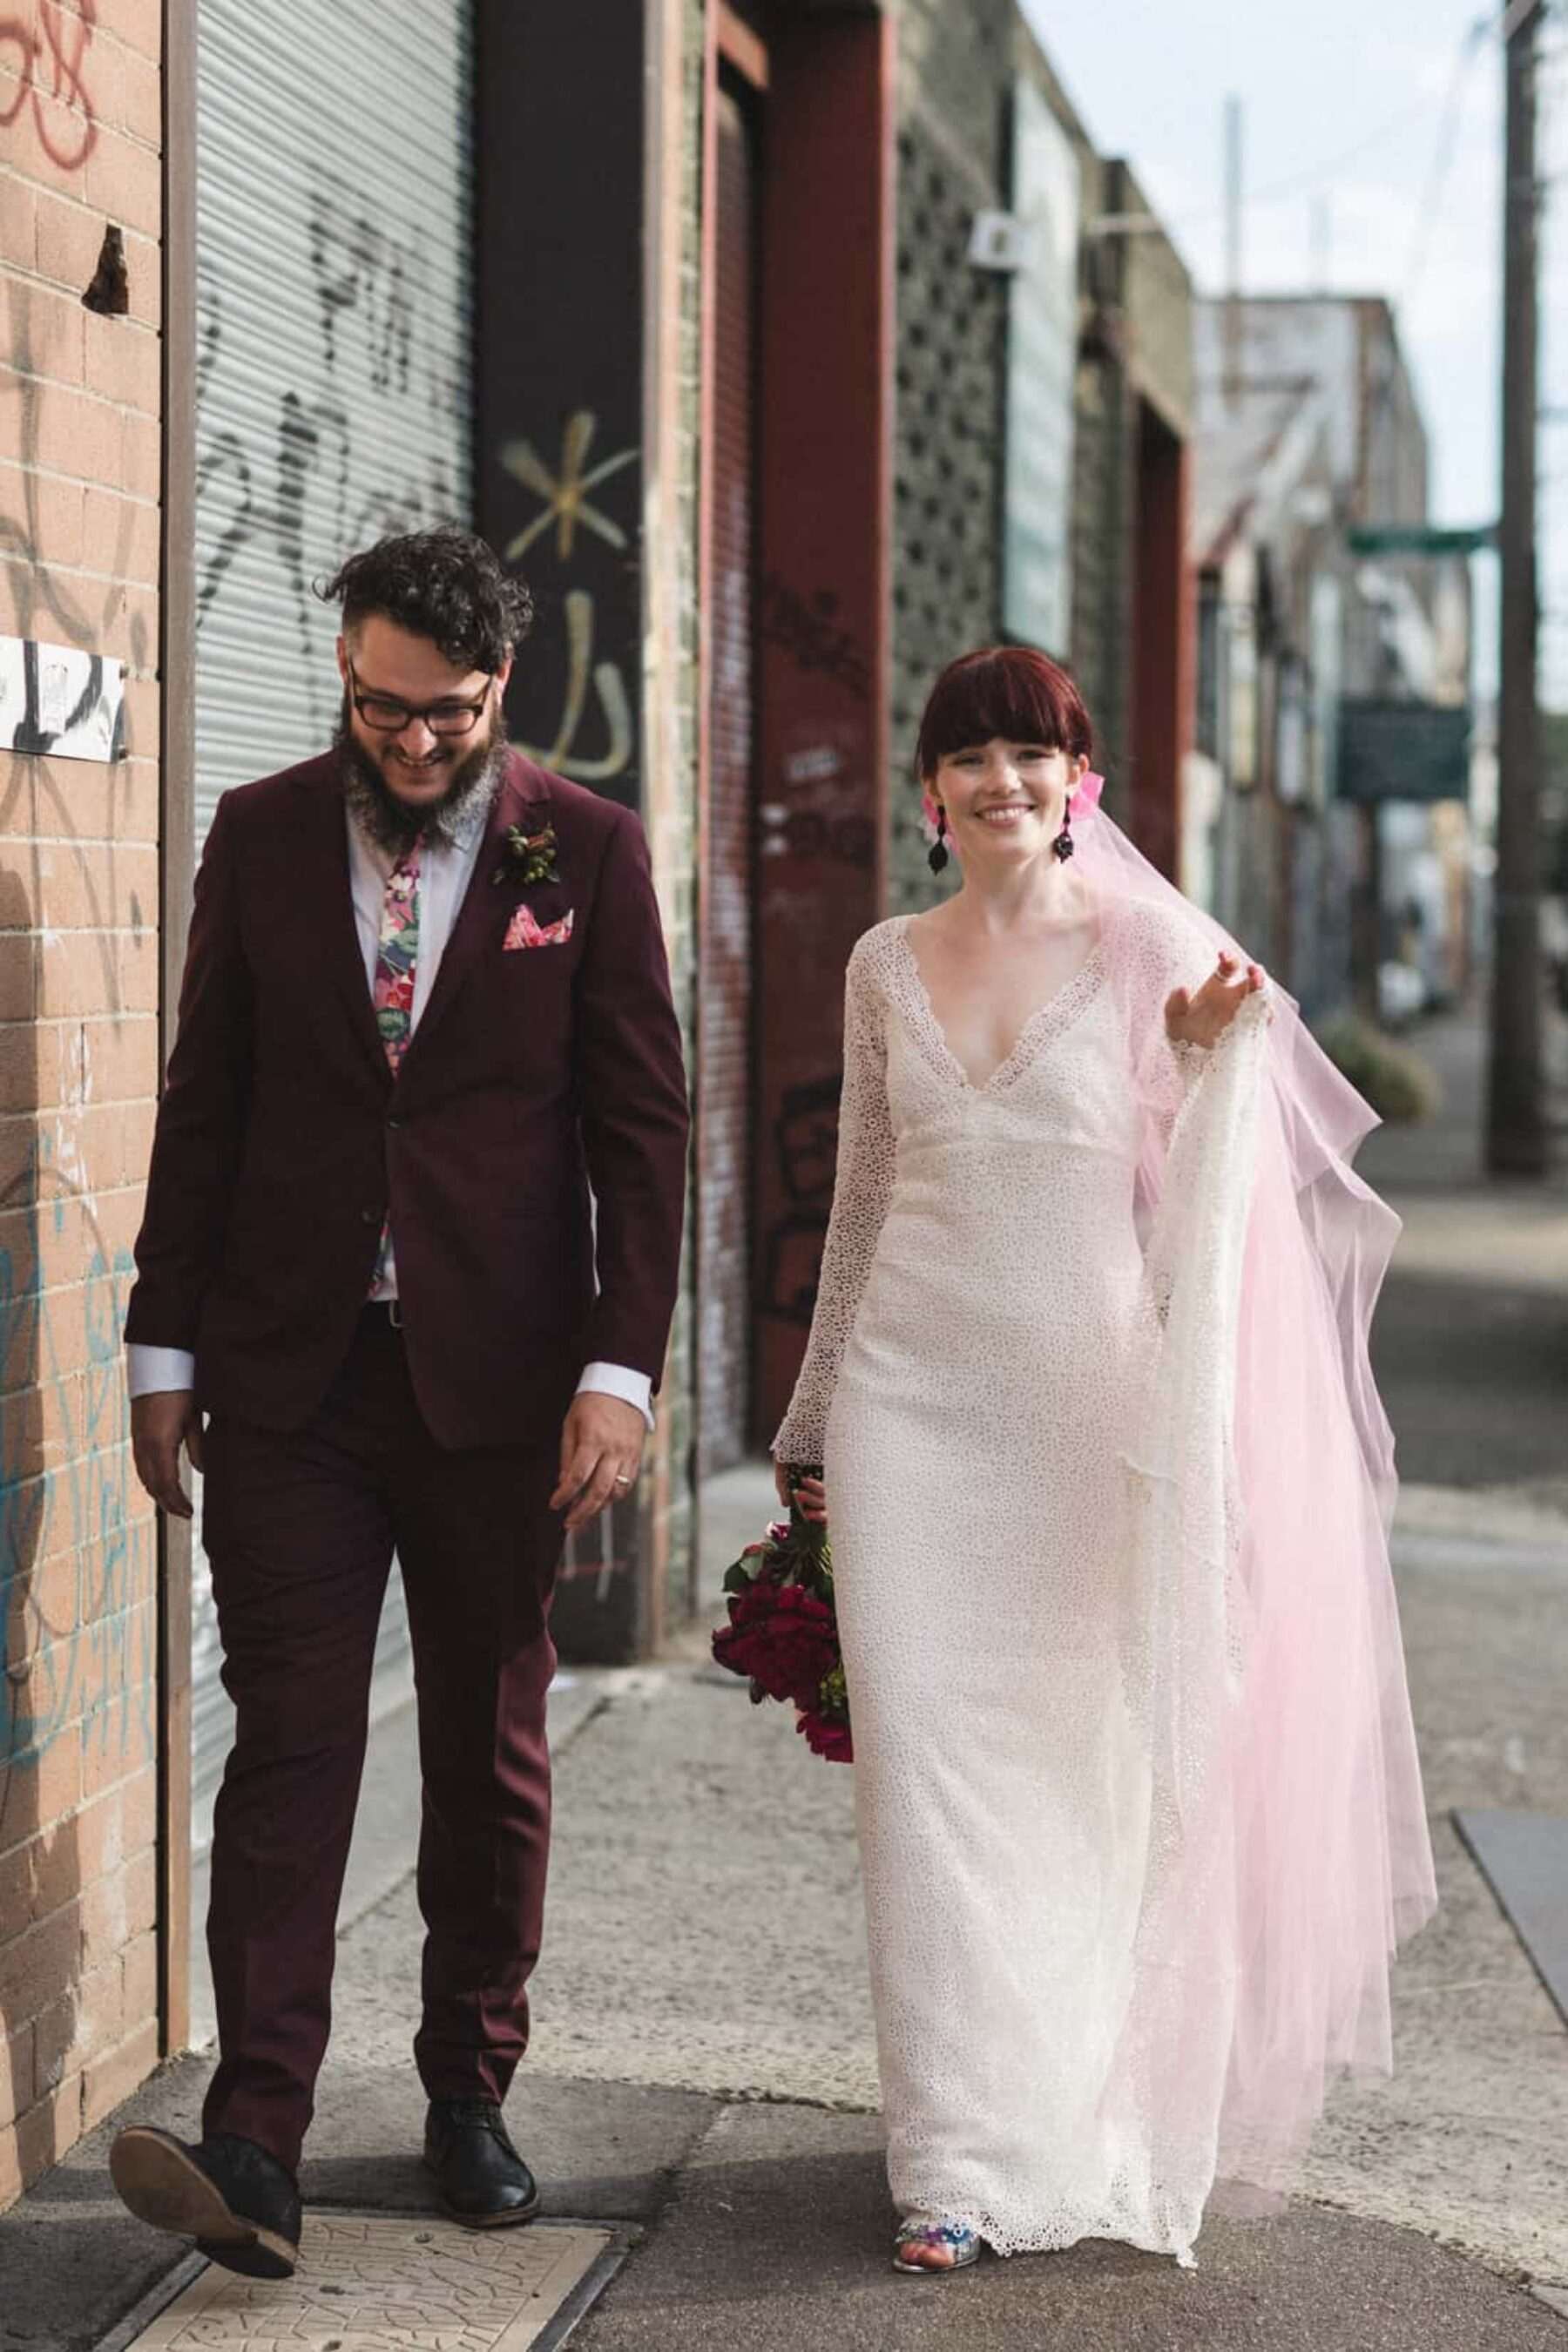 bearded groom and bride with pink tulle veil